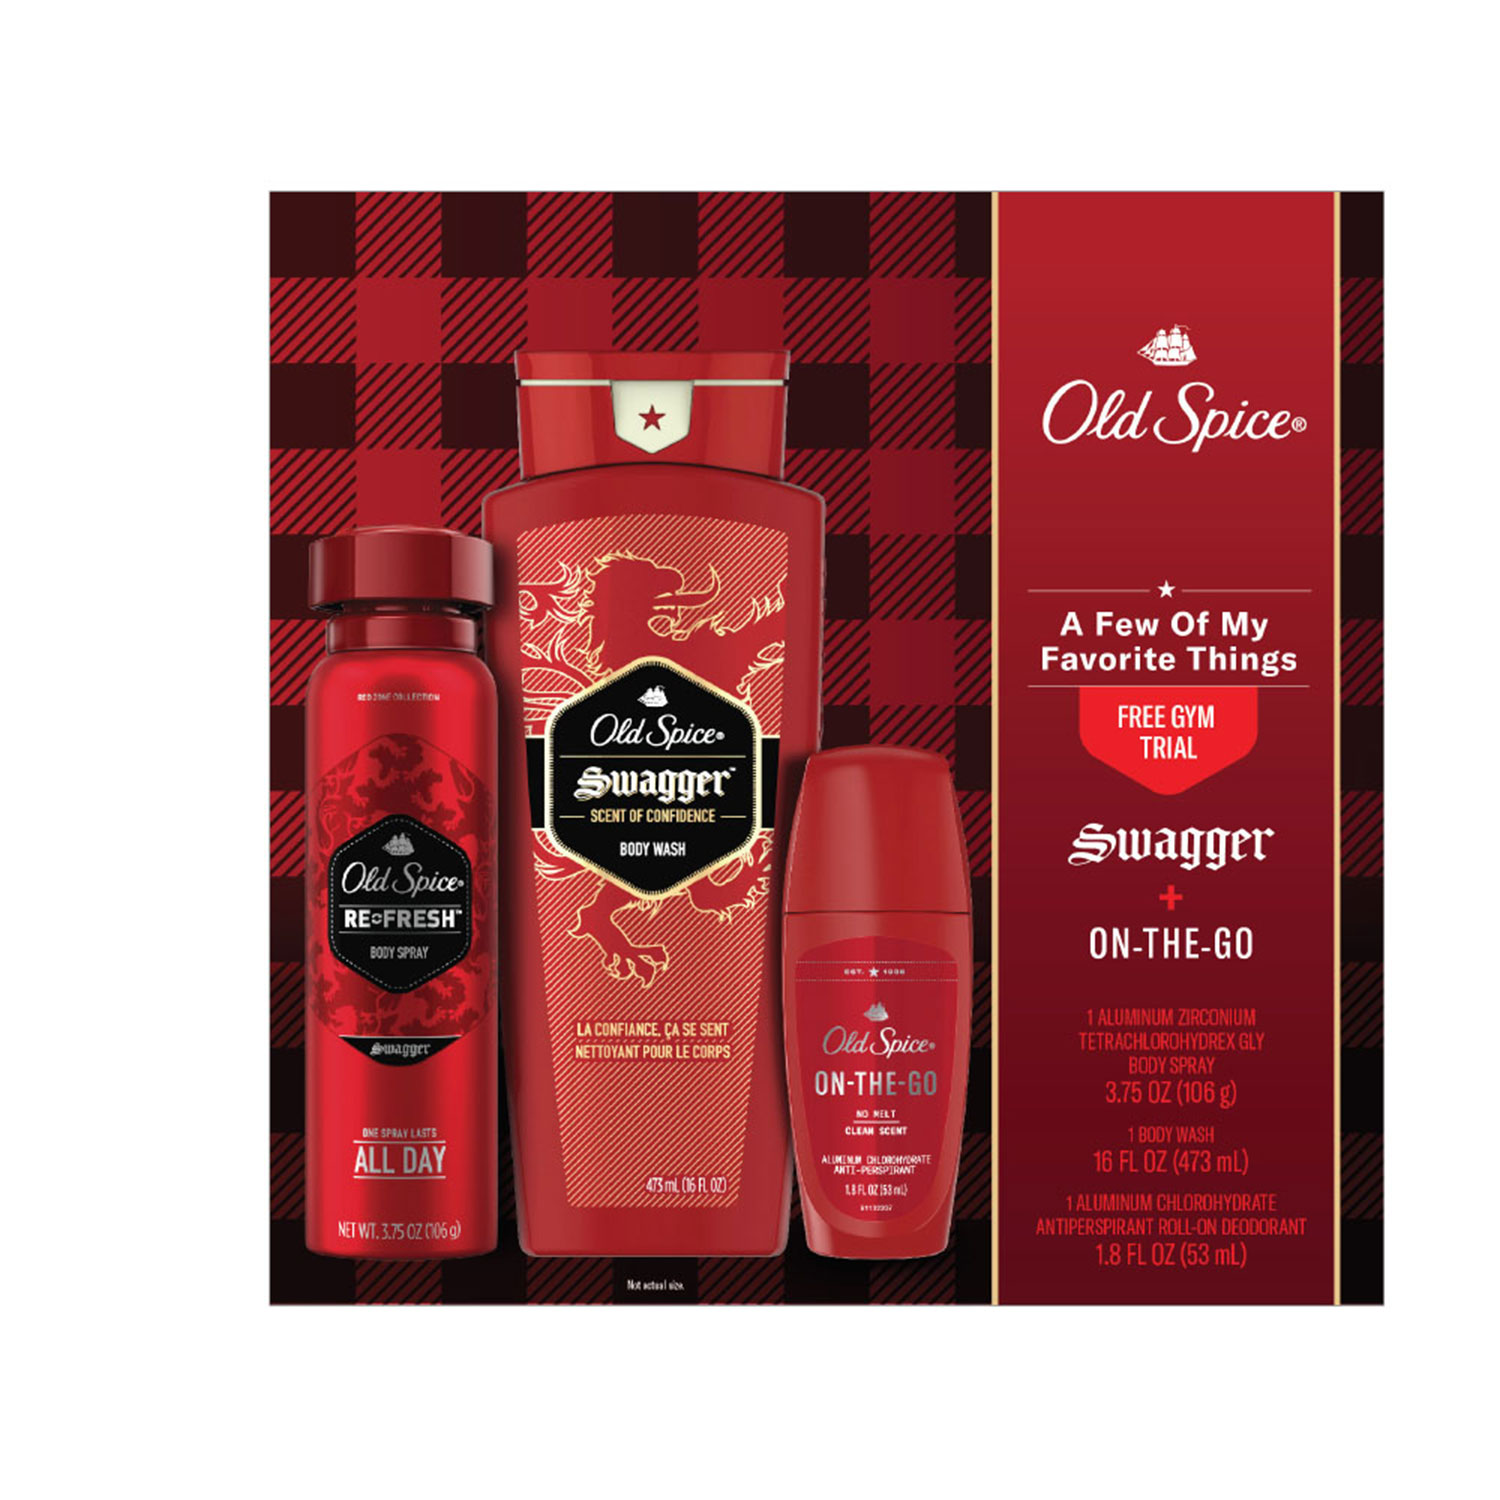 old spice swagger body spray body wash on-the-go anti-perspirant